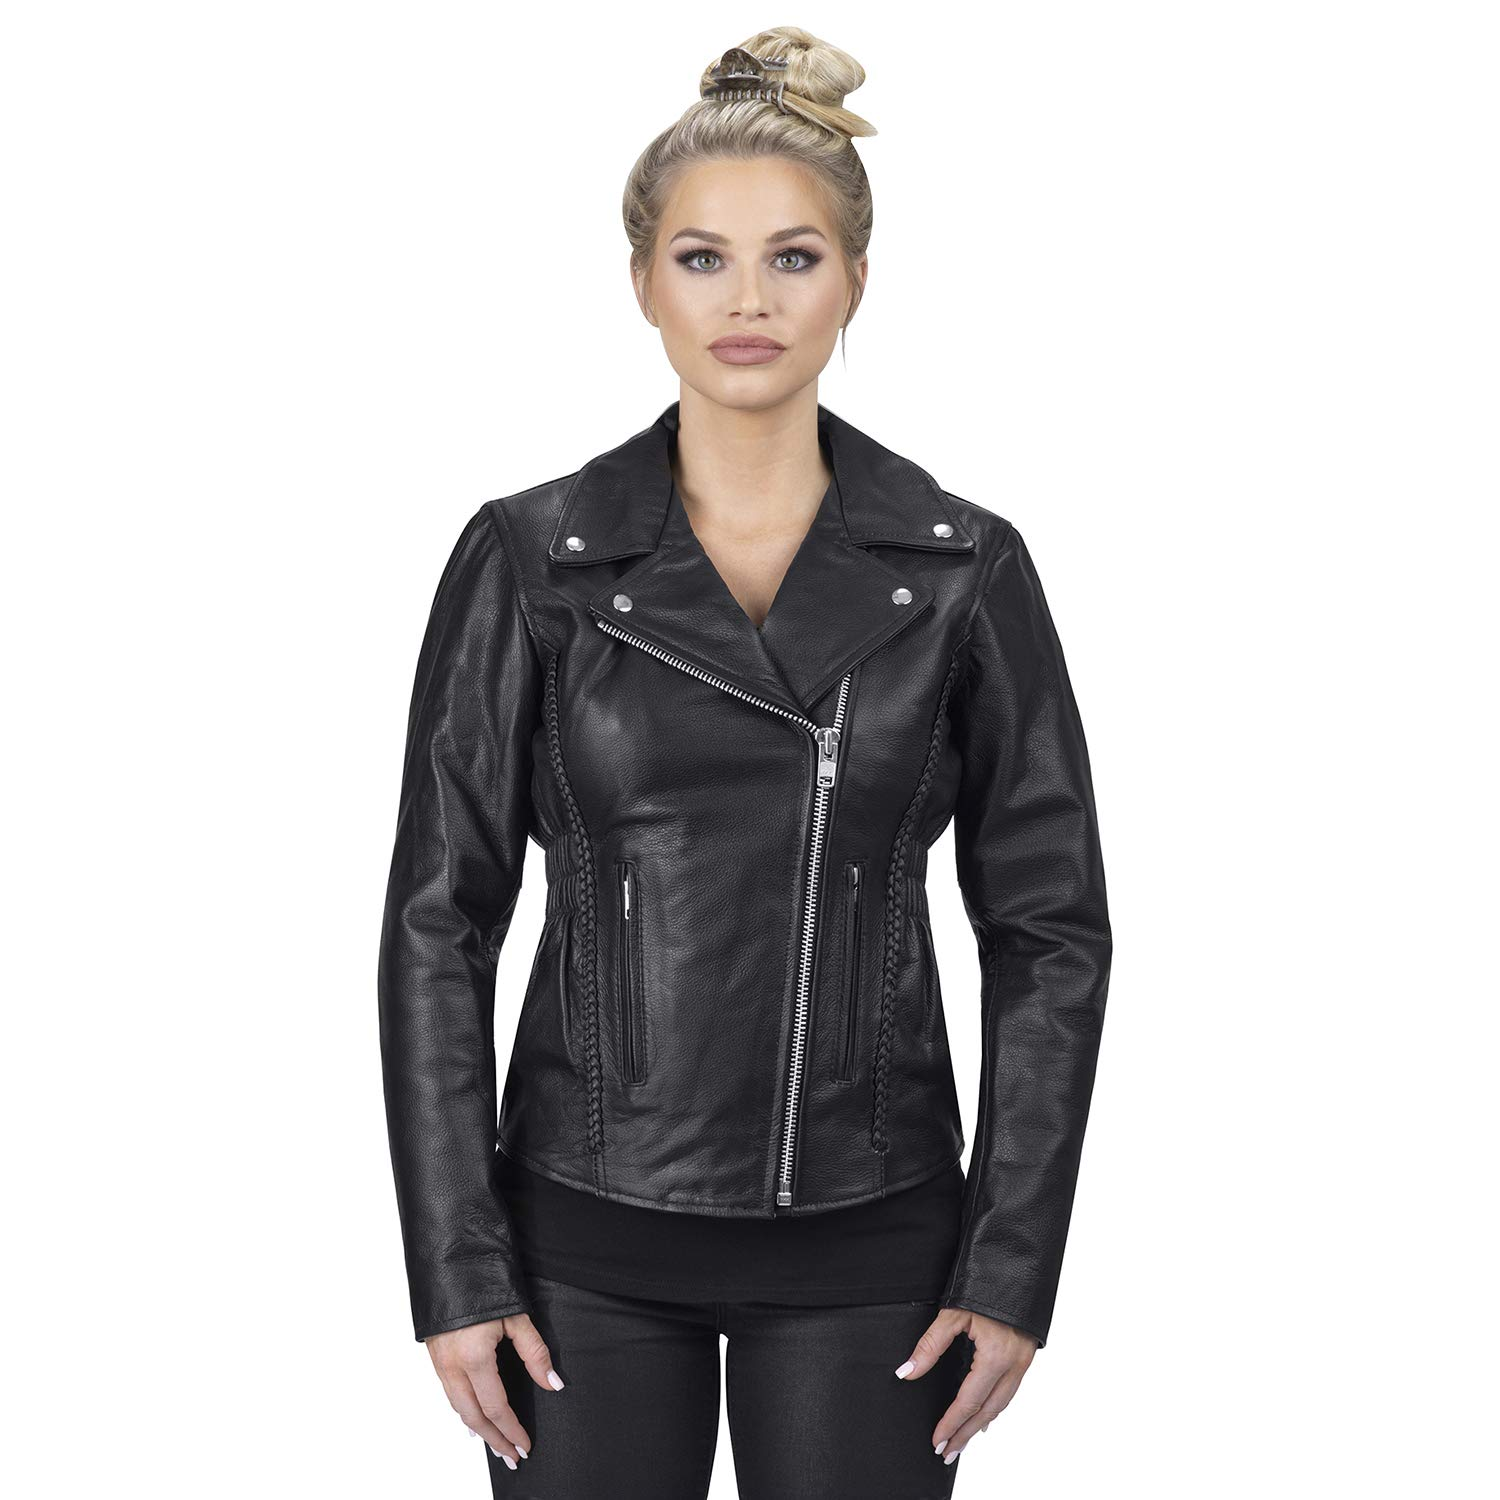 Viking Cycle Cruise Premium Grade Cowhide Leather Motorcycle Jacket for Women (X-Small, Black) by Viking Cycle